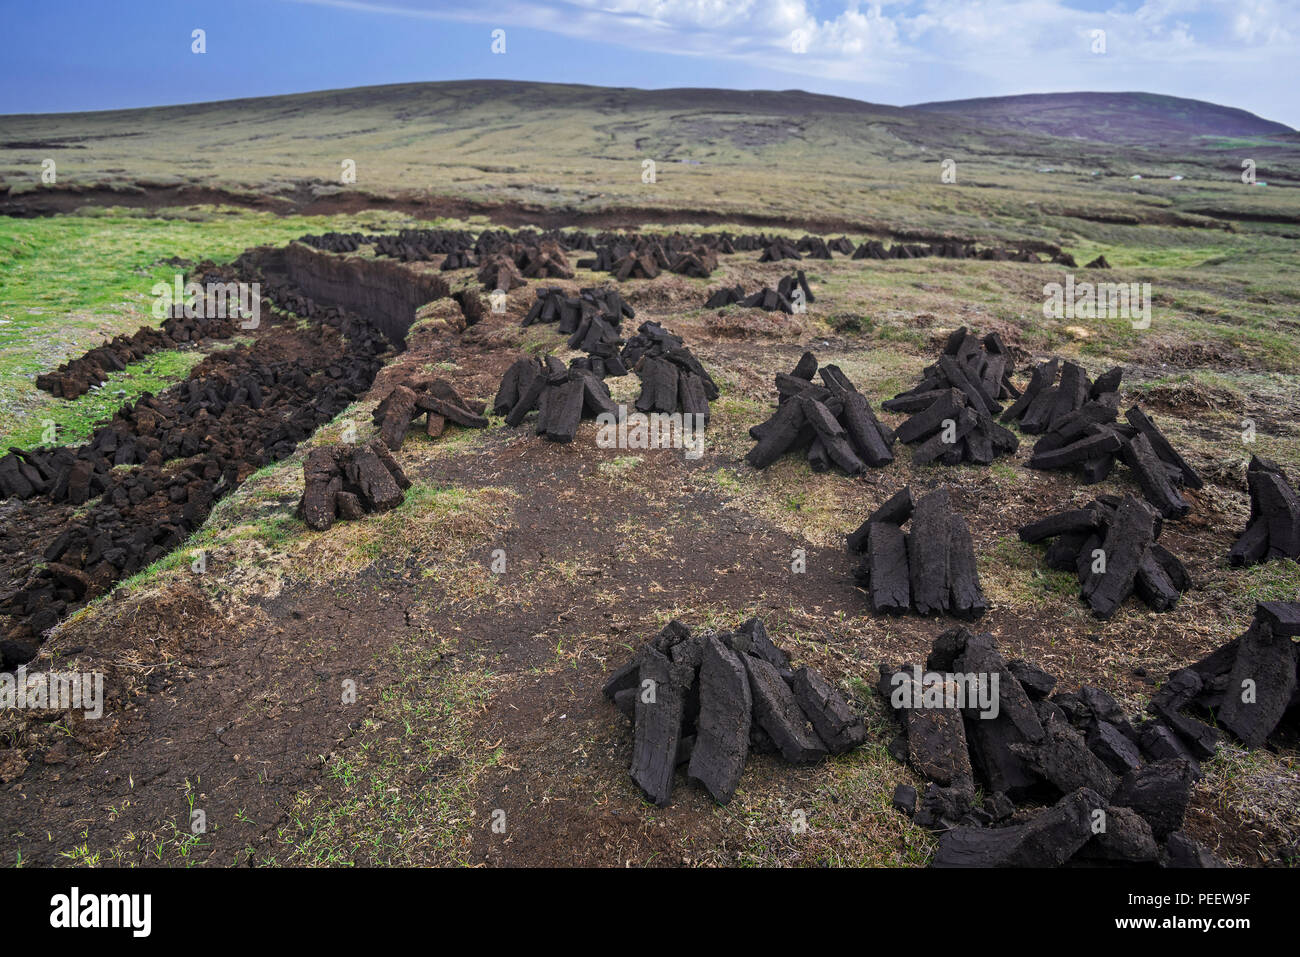 Peat extraction in bog / moorland showing piles of harvested peat drying to be used as traditional fuel, Shetland Islands, Scotland, UK - Stock Image